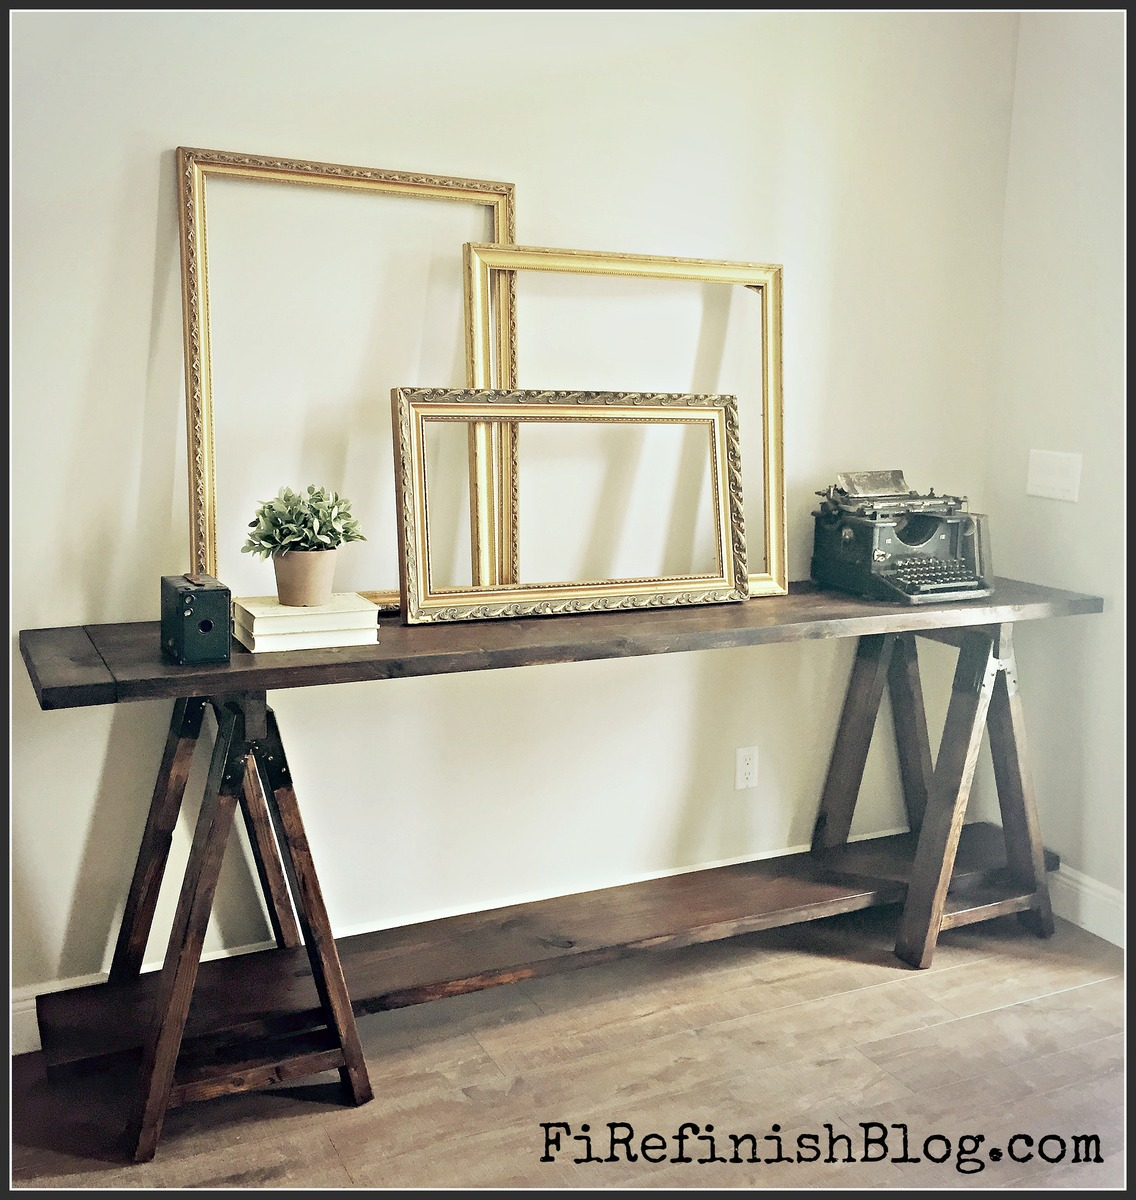 50 Free Farm For Farmhouse Style Diy Projects